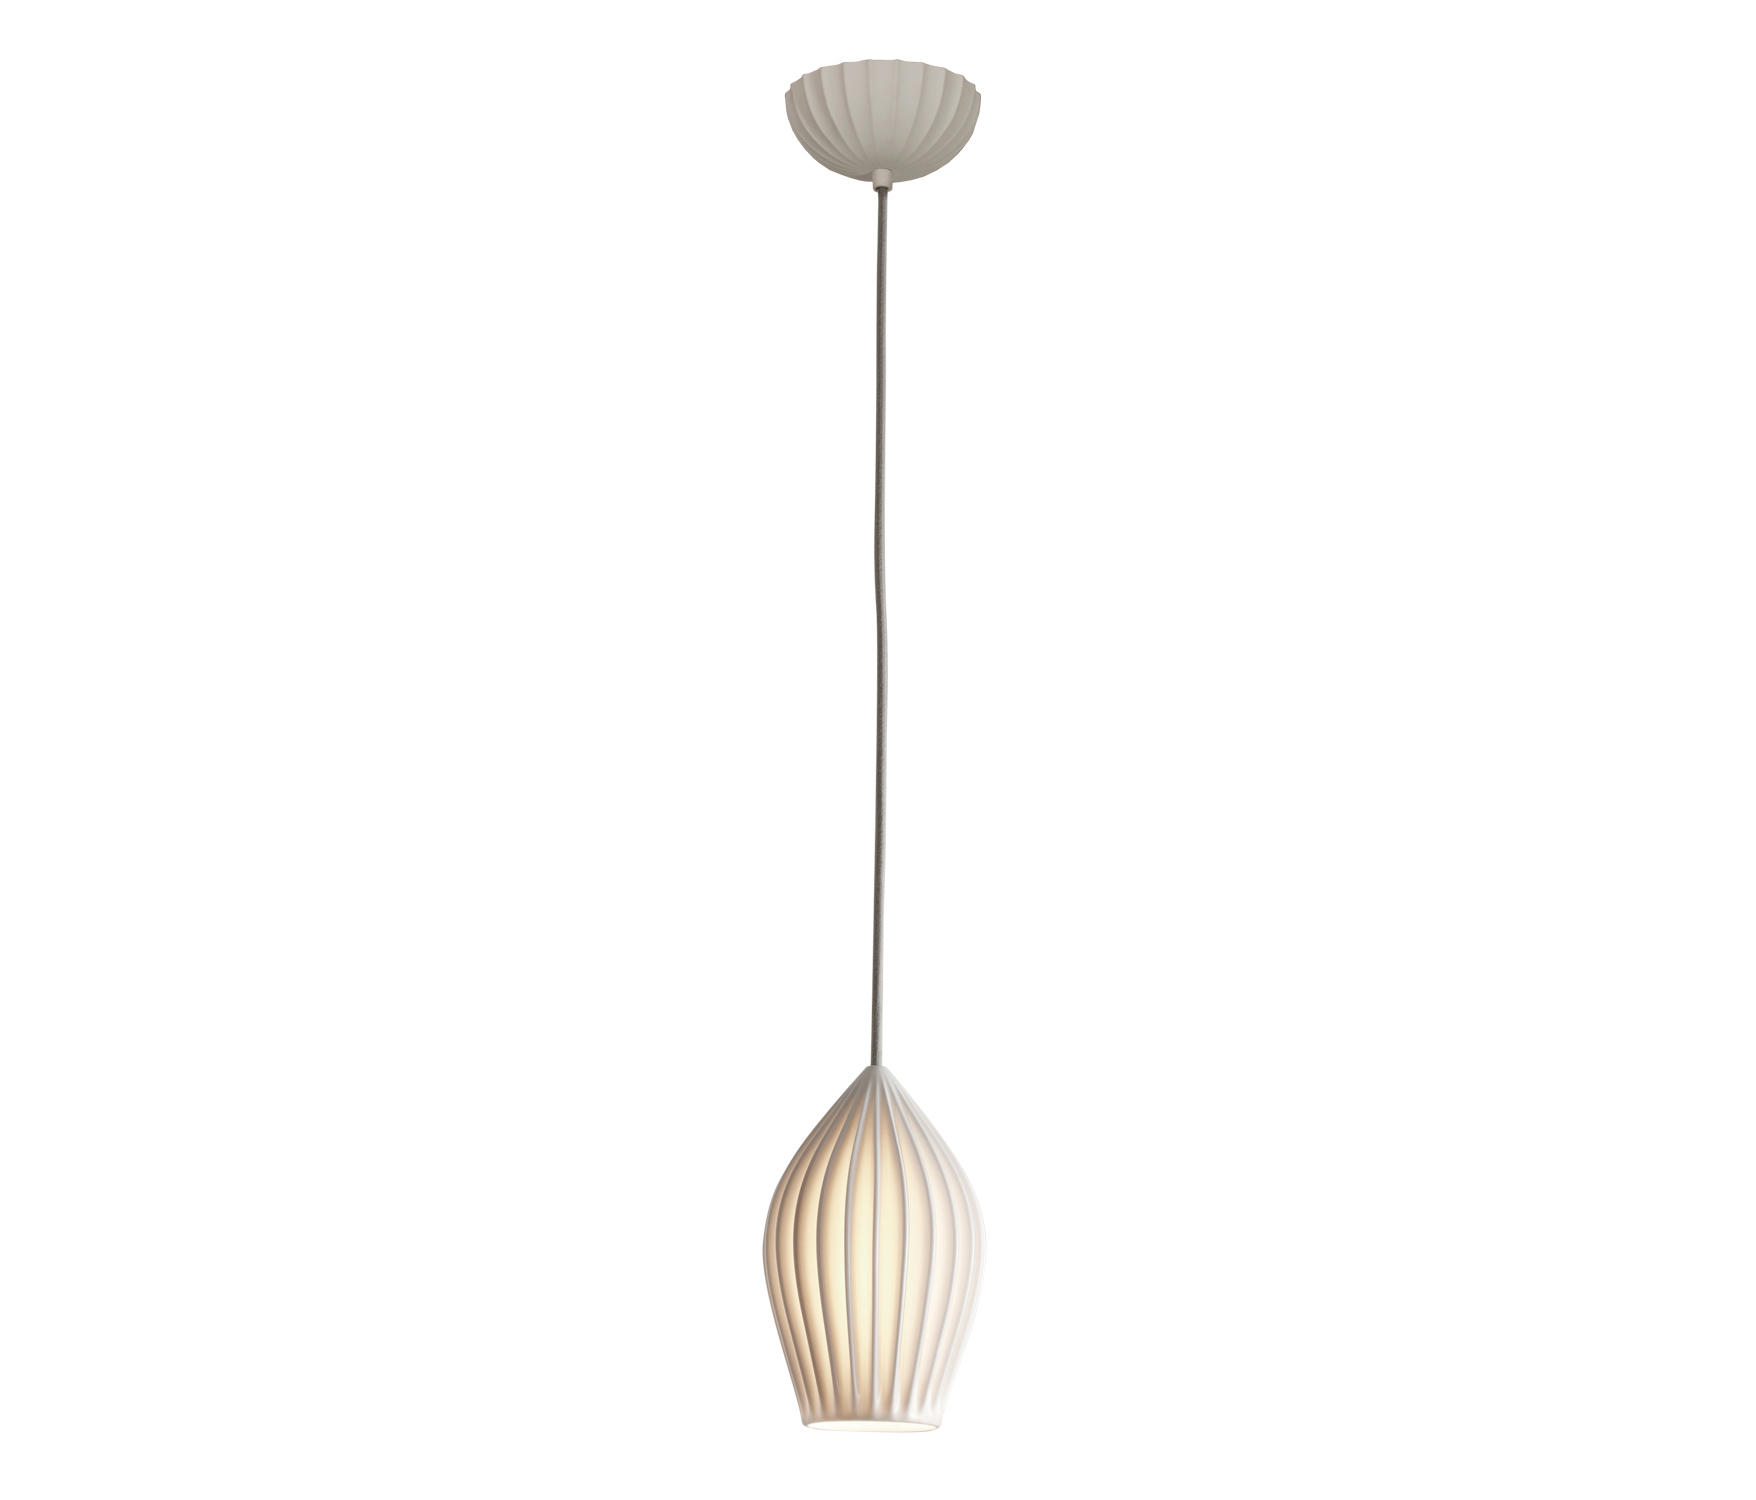 Fin Medium PendantSand Cable Suspensions Taupe Braided De And LSMpGUVqz